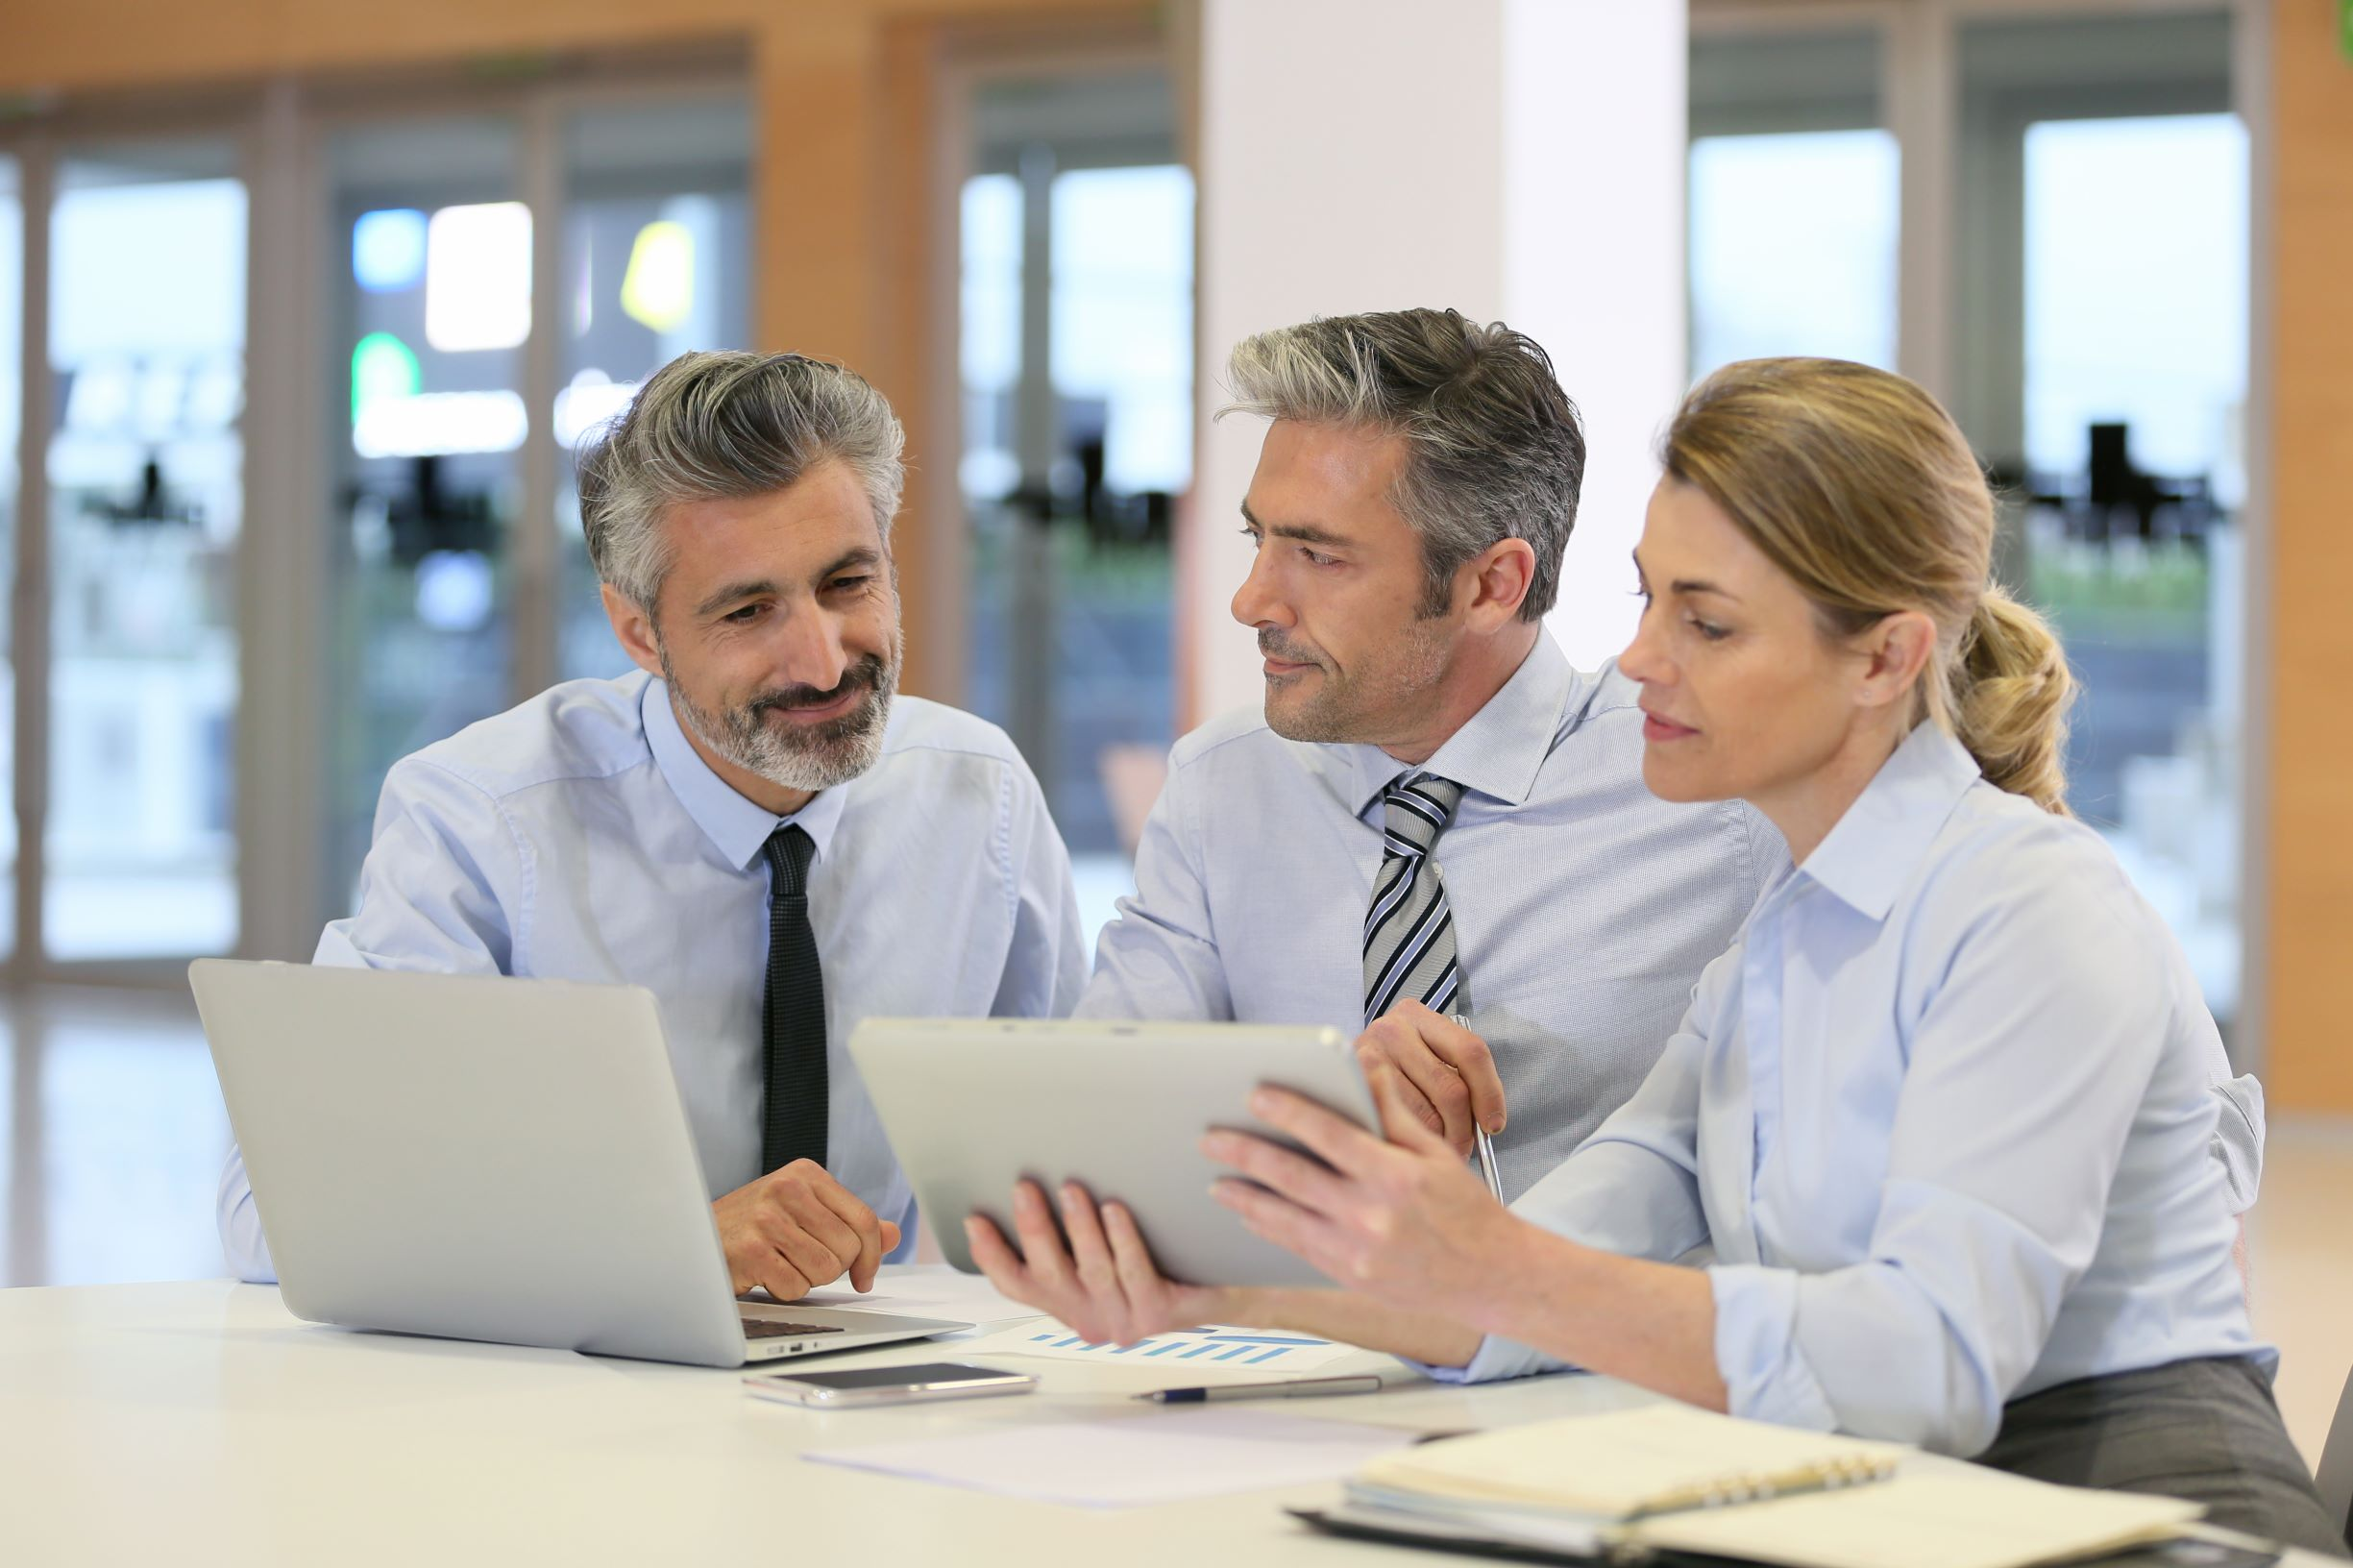 Technology consultants using computers to discuss the design of possible VoIP solutions for businesses